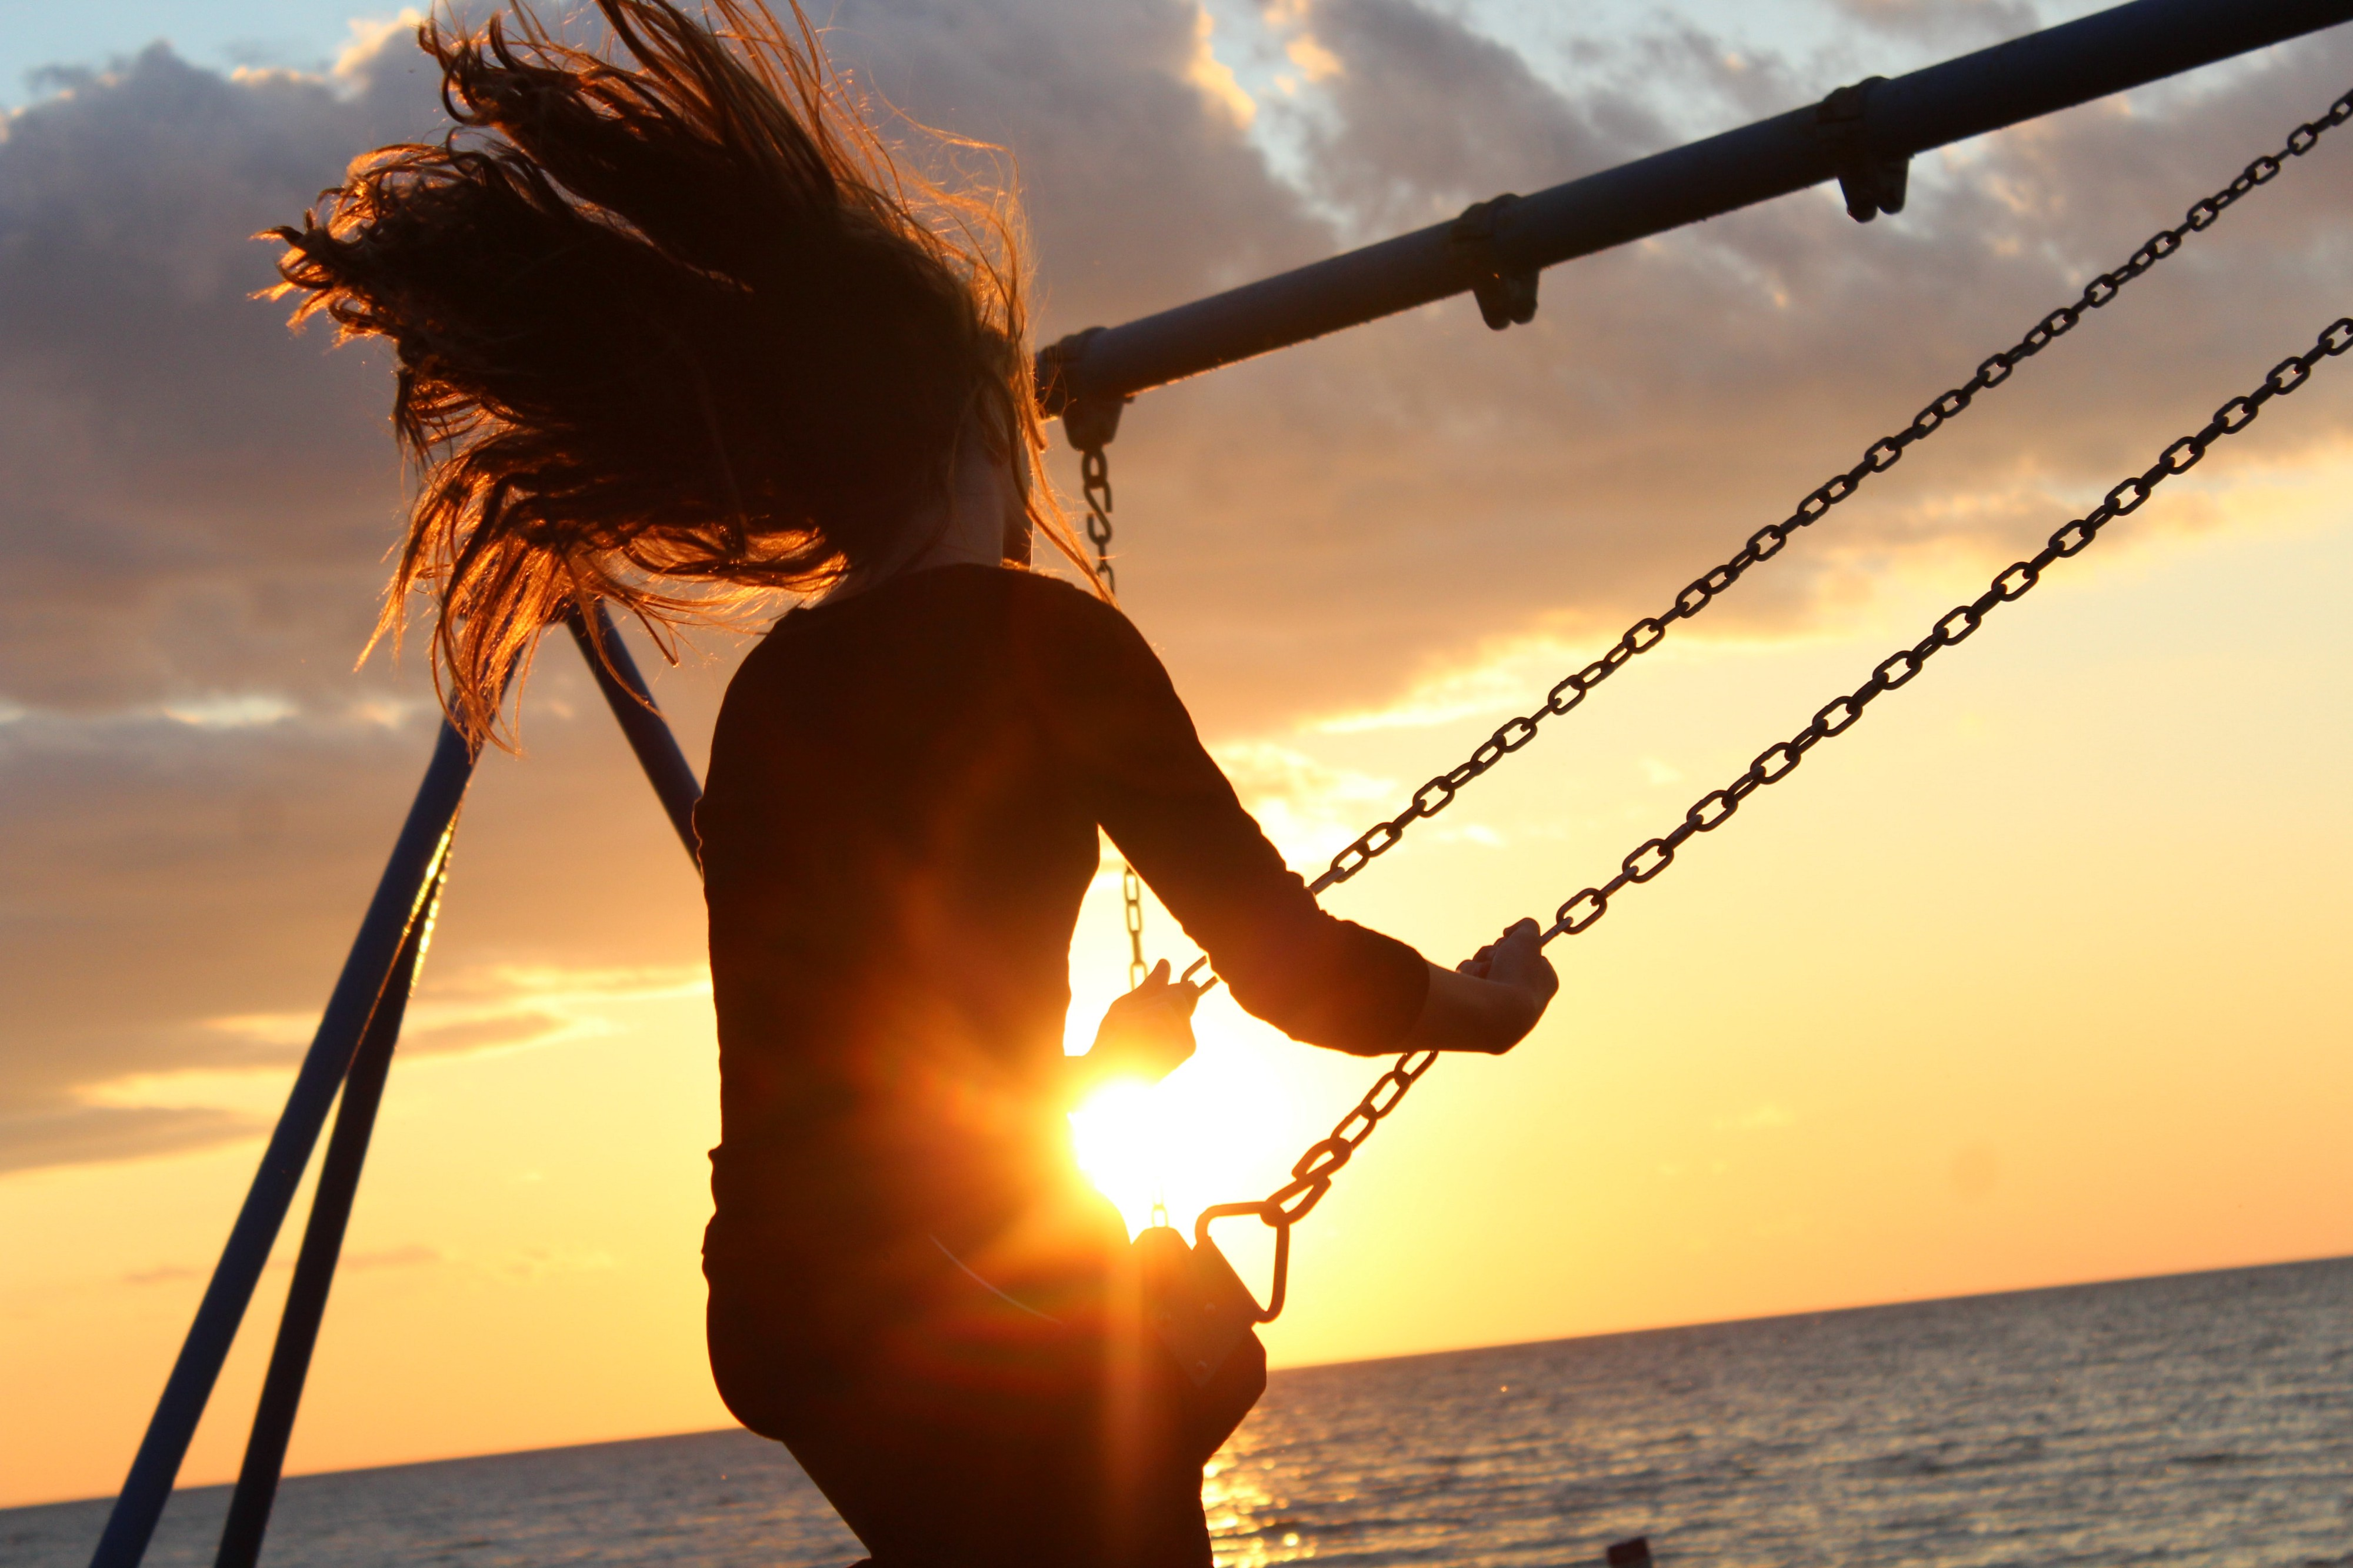 girl swinging on swing set against beach background with sun setting down